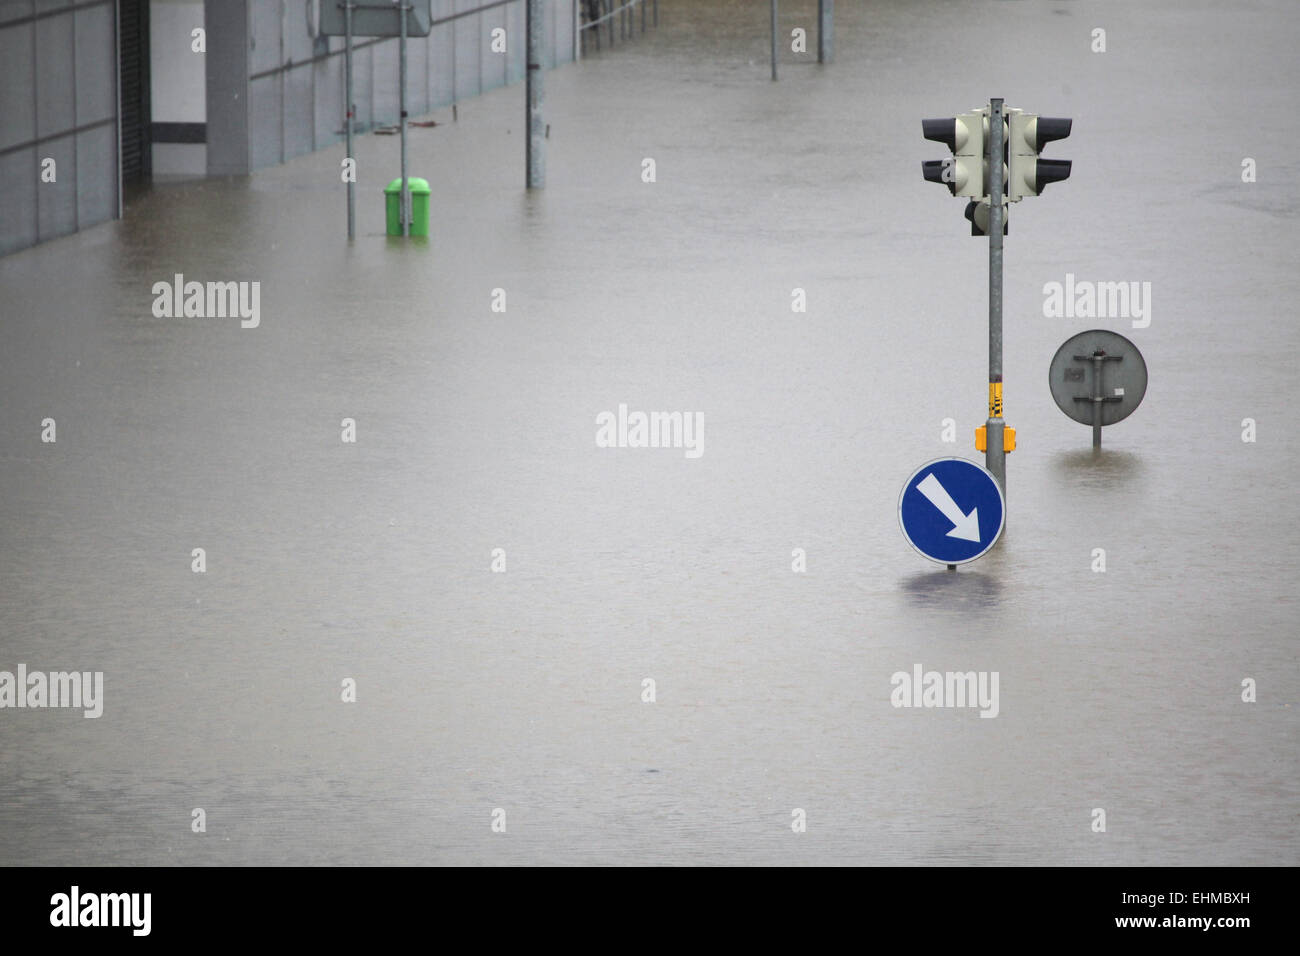 Flooded crossroad with traffic lights and a keep right traffic sign flooded by the Vltava River in Prague, Czech - Stock Image